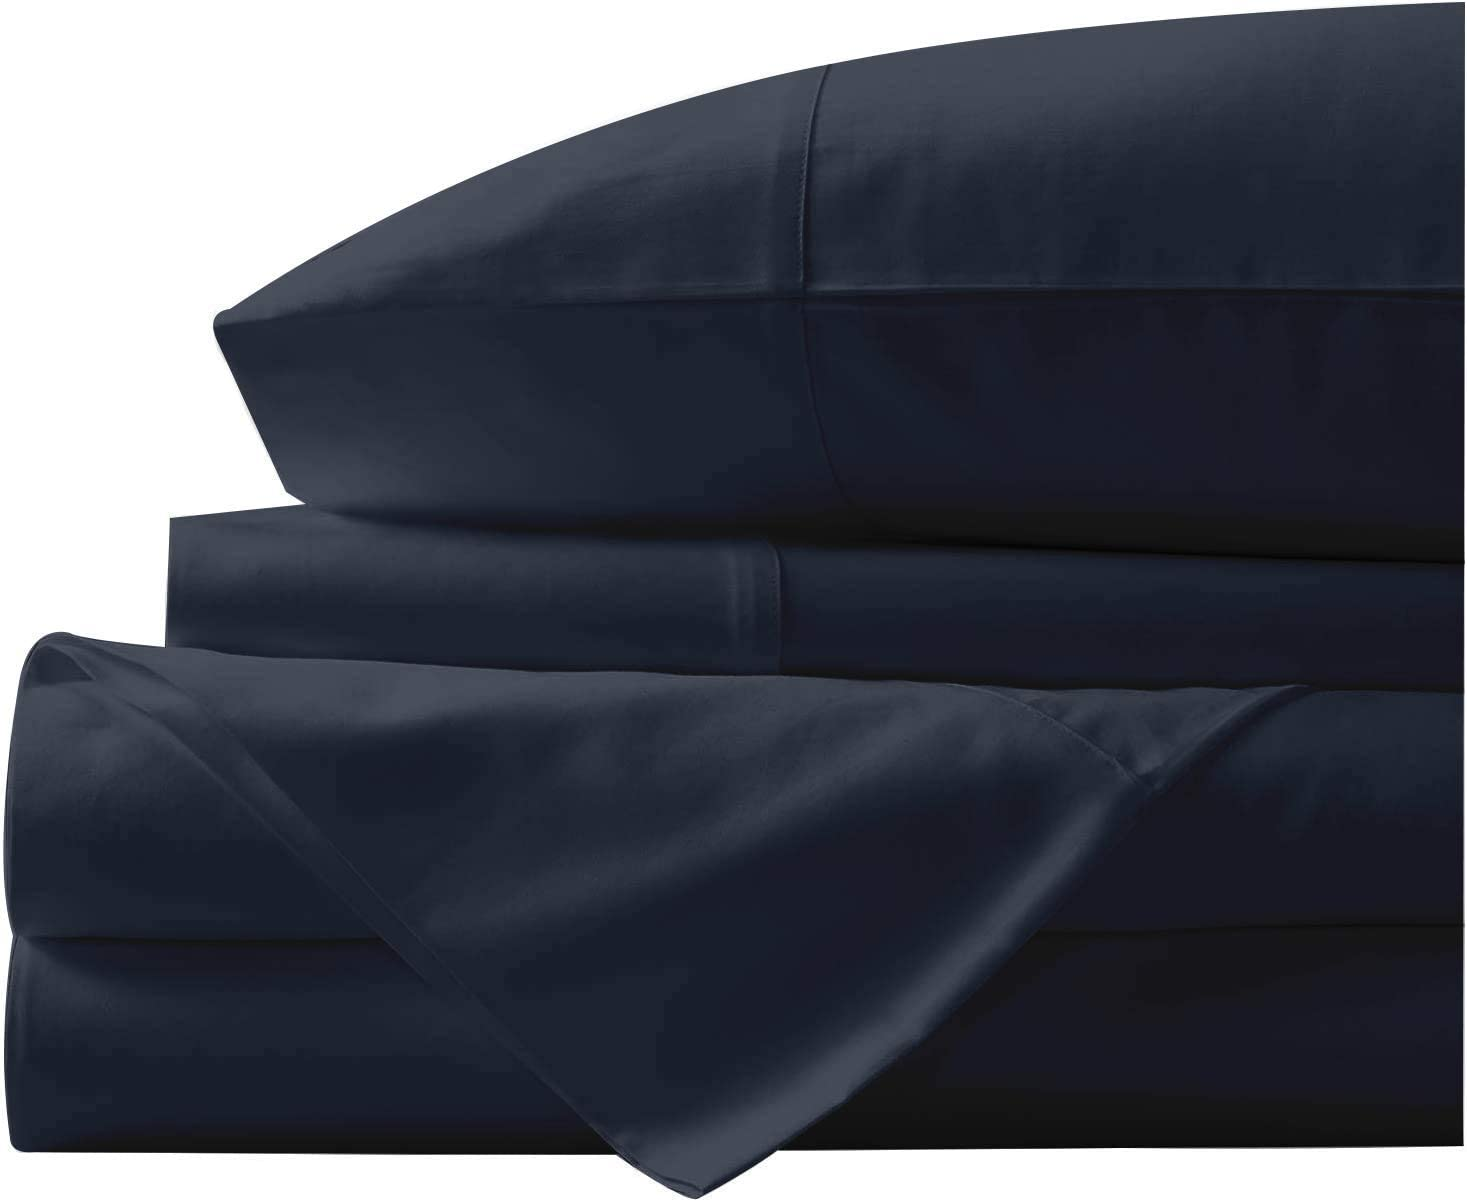 Bunny's Home 4 Piece Sheet Set 100% Egyptian Cotton Sheets 18 inches Extra Deep Pocket 800 Thread Count Bedsheet, Fitted Sheet & 2 Pillowcase Soft Solid Hotel Luxury [Queen Size, Midnight Blue]